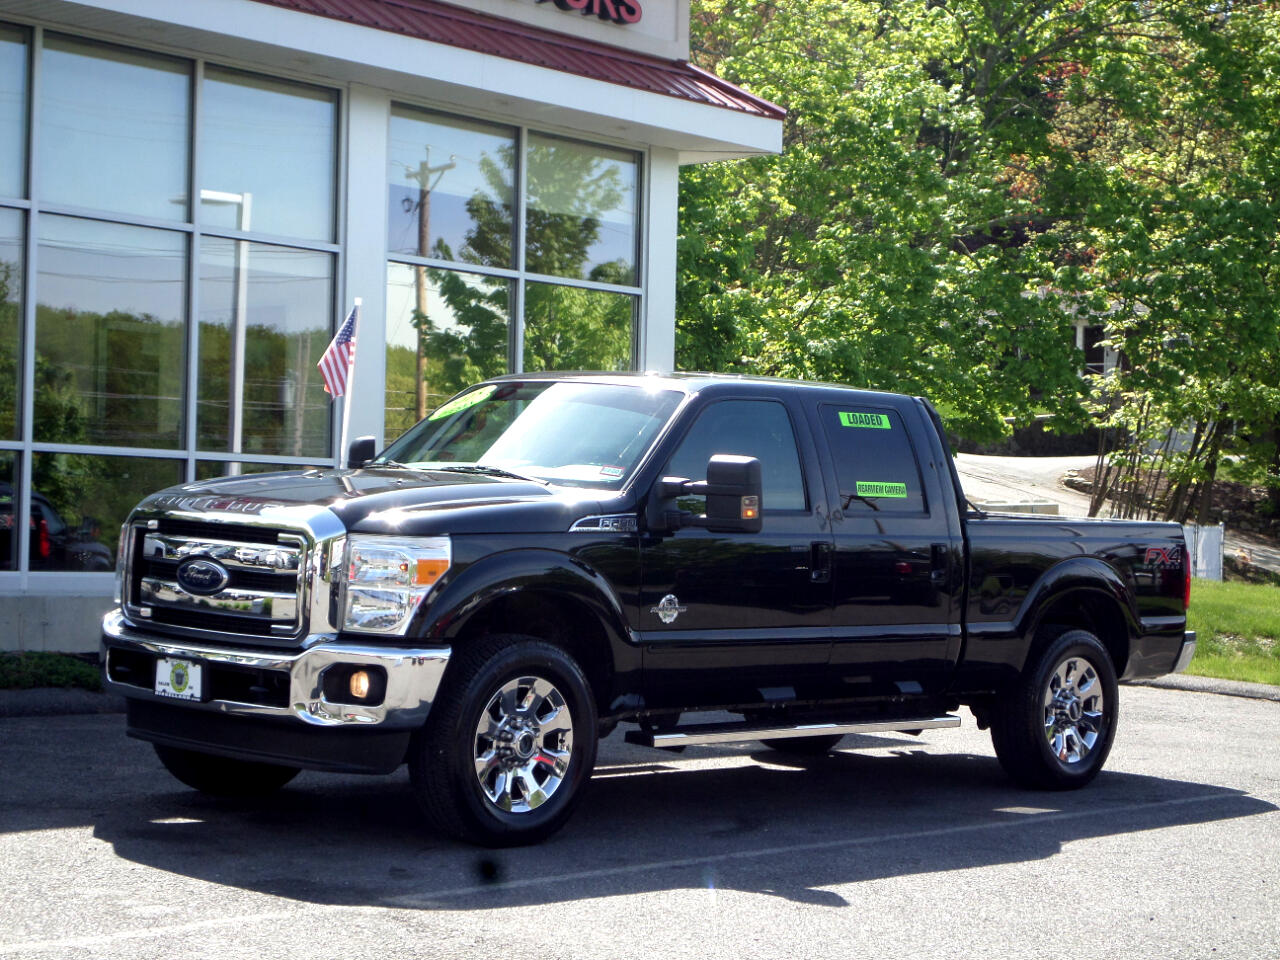 2015 Ford Super Duty F-250 SRW CREW CAB POWERSTROKE DIESEL LARIAT ULTIMATE